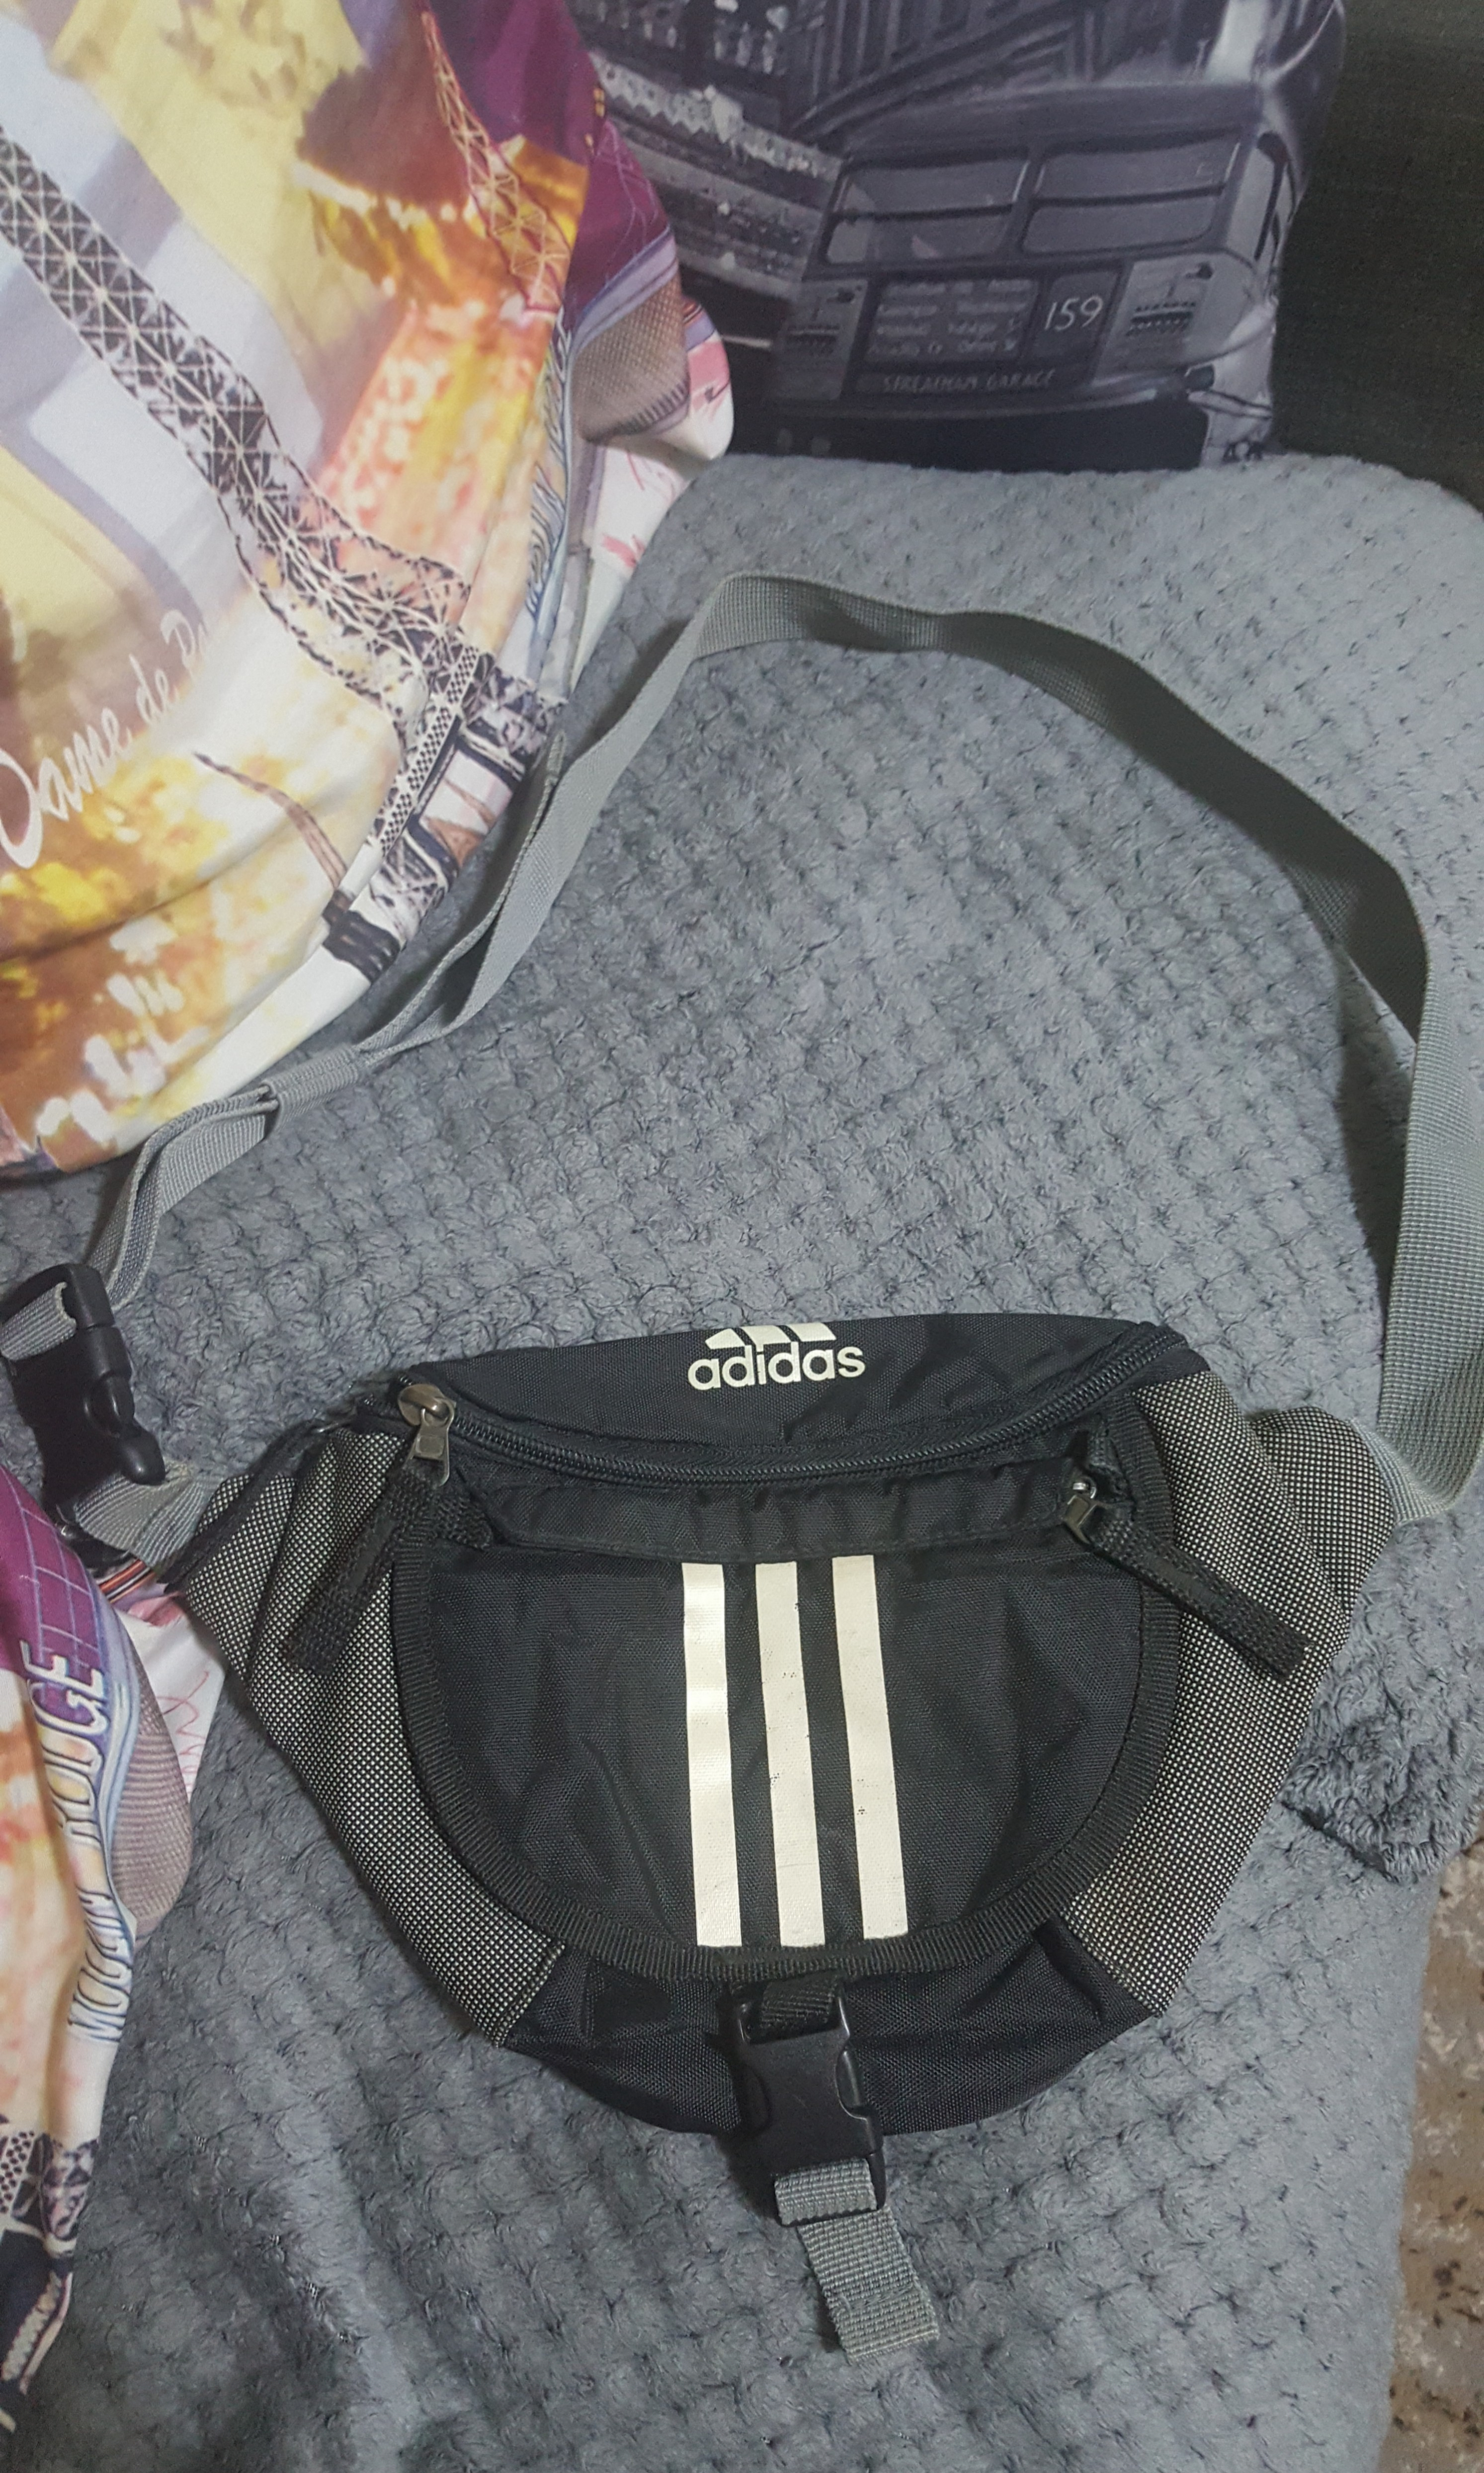 8e86eeb8ef Original Adidas unisex belt bag sports bag